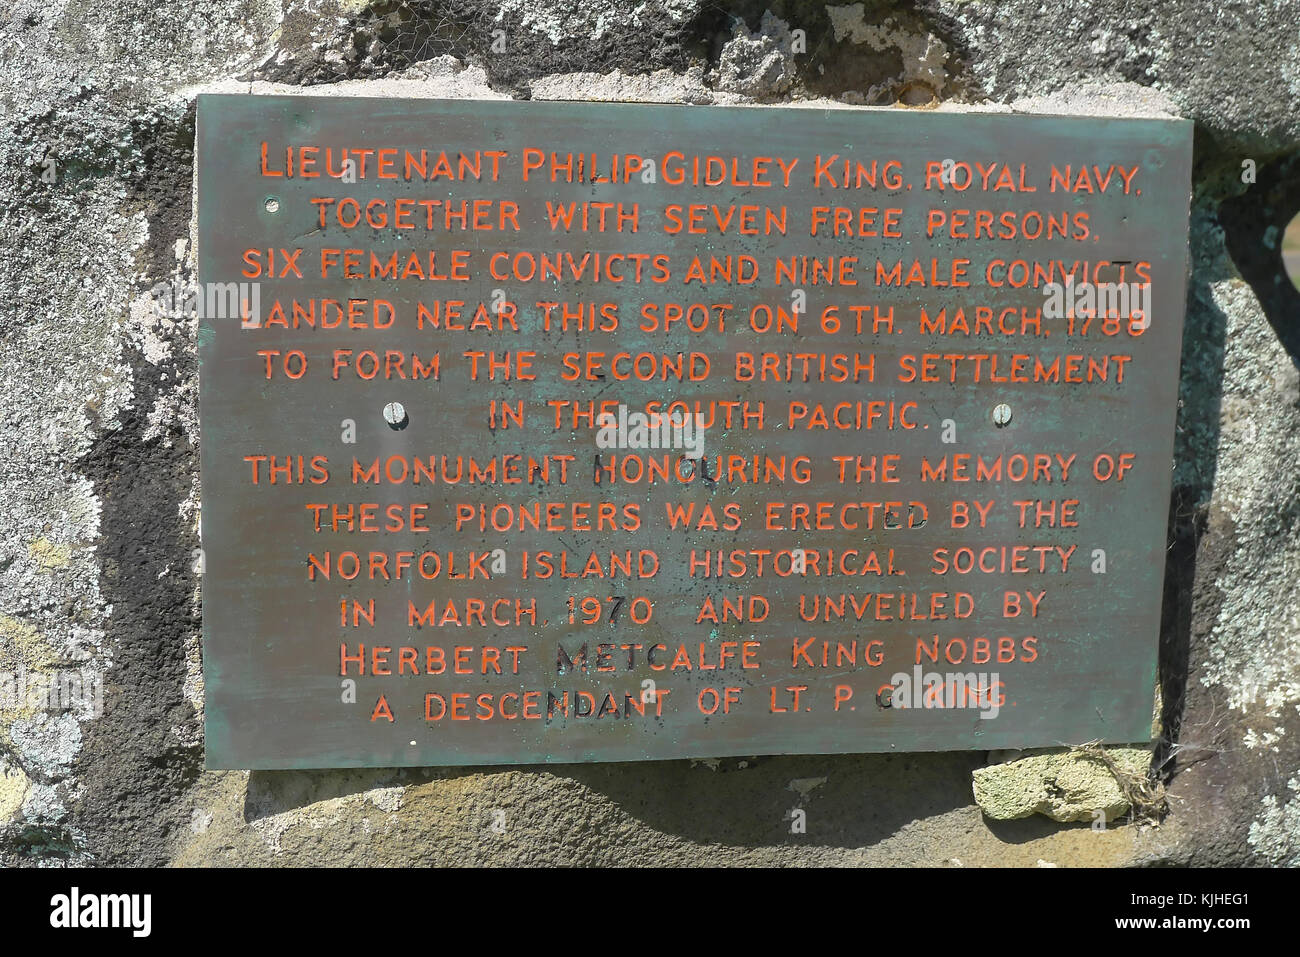 Plaque recording Lieutenant Philip Gidley King and 22 settlers (including 9 male and 6 female convicts) - Stock Image